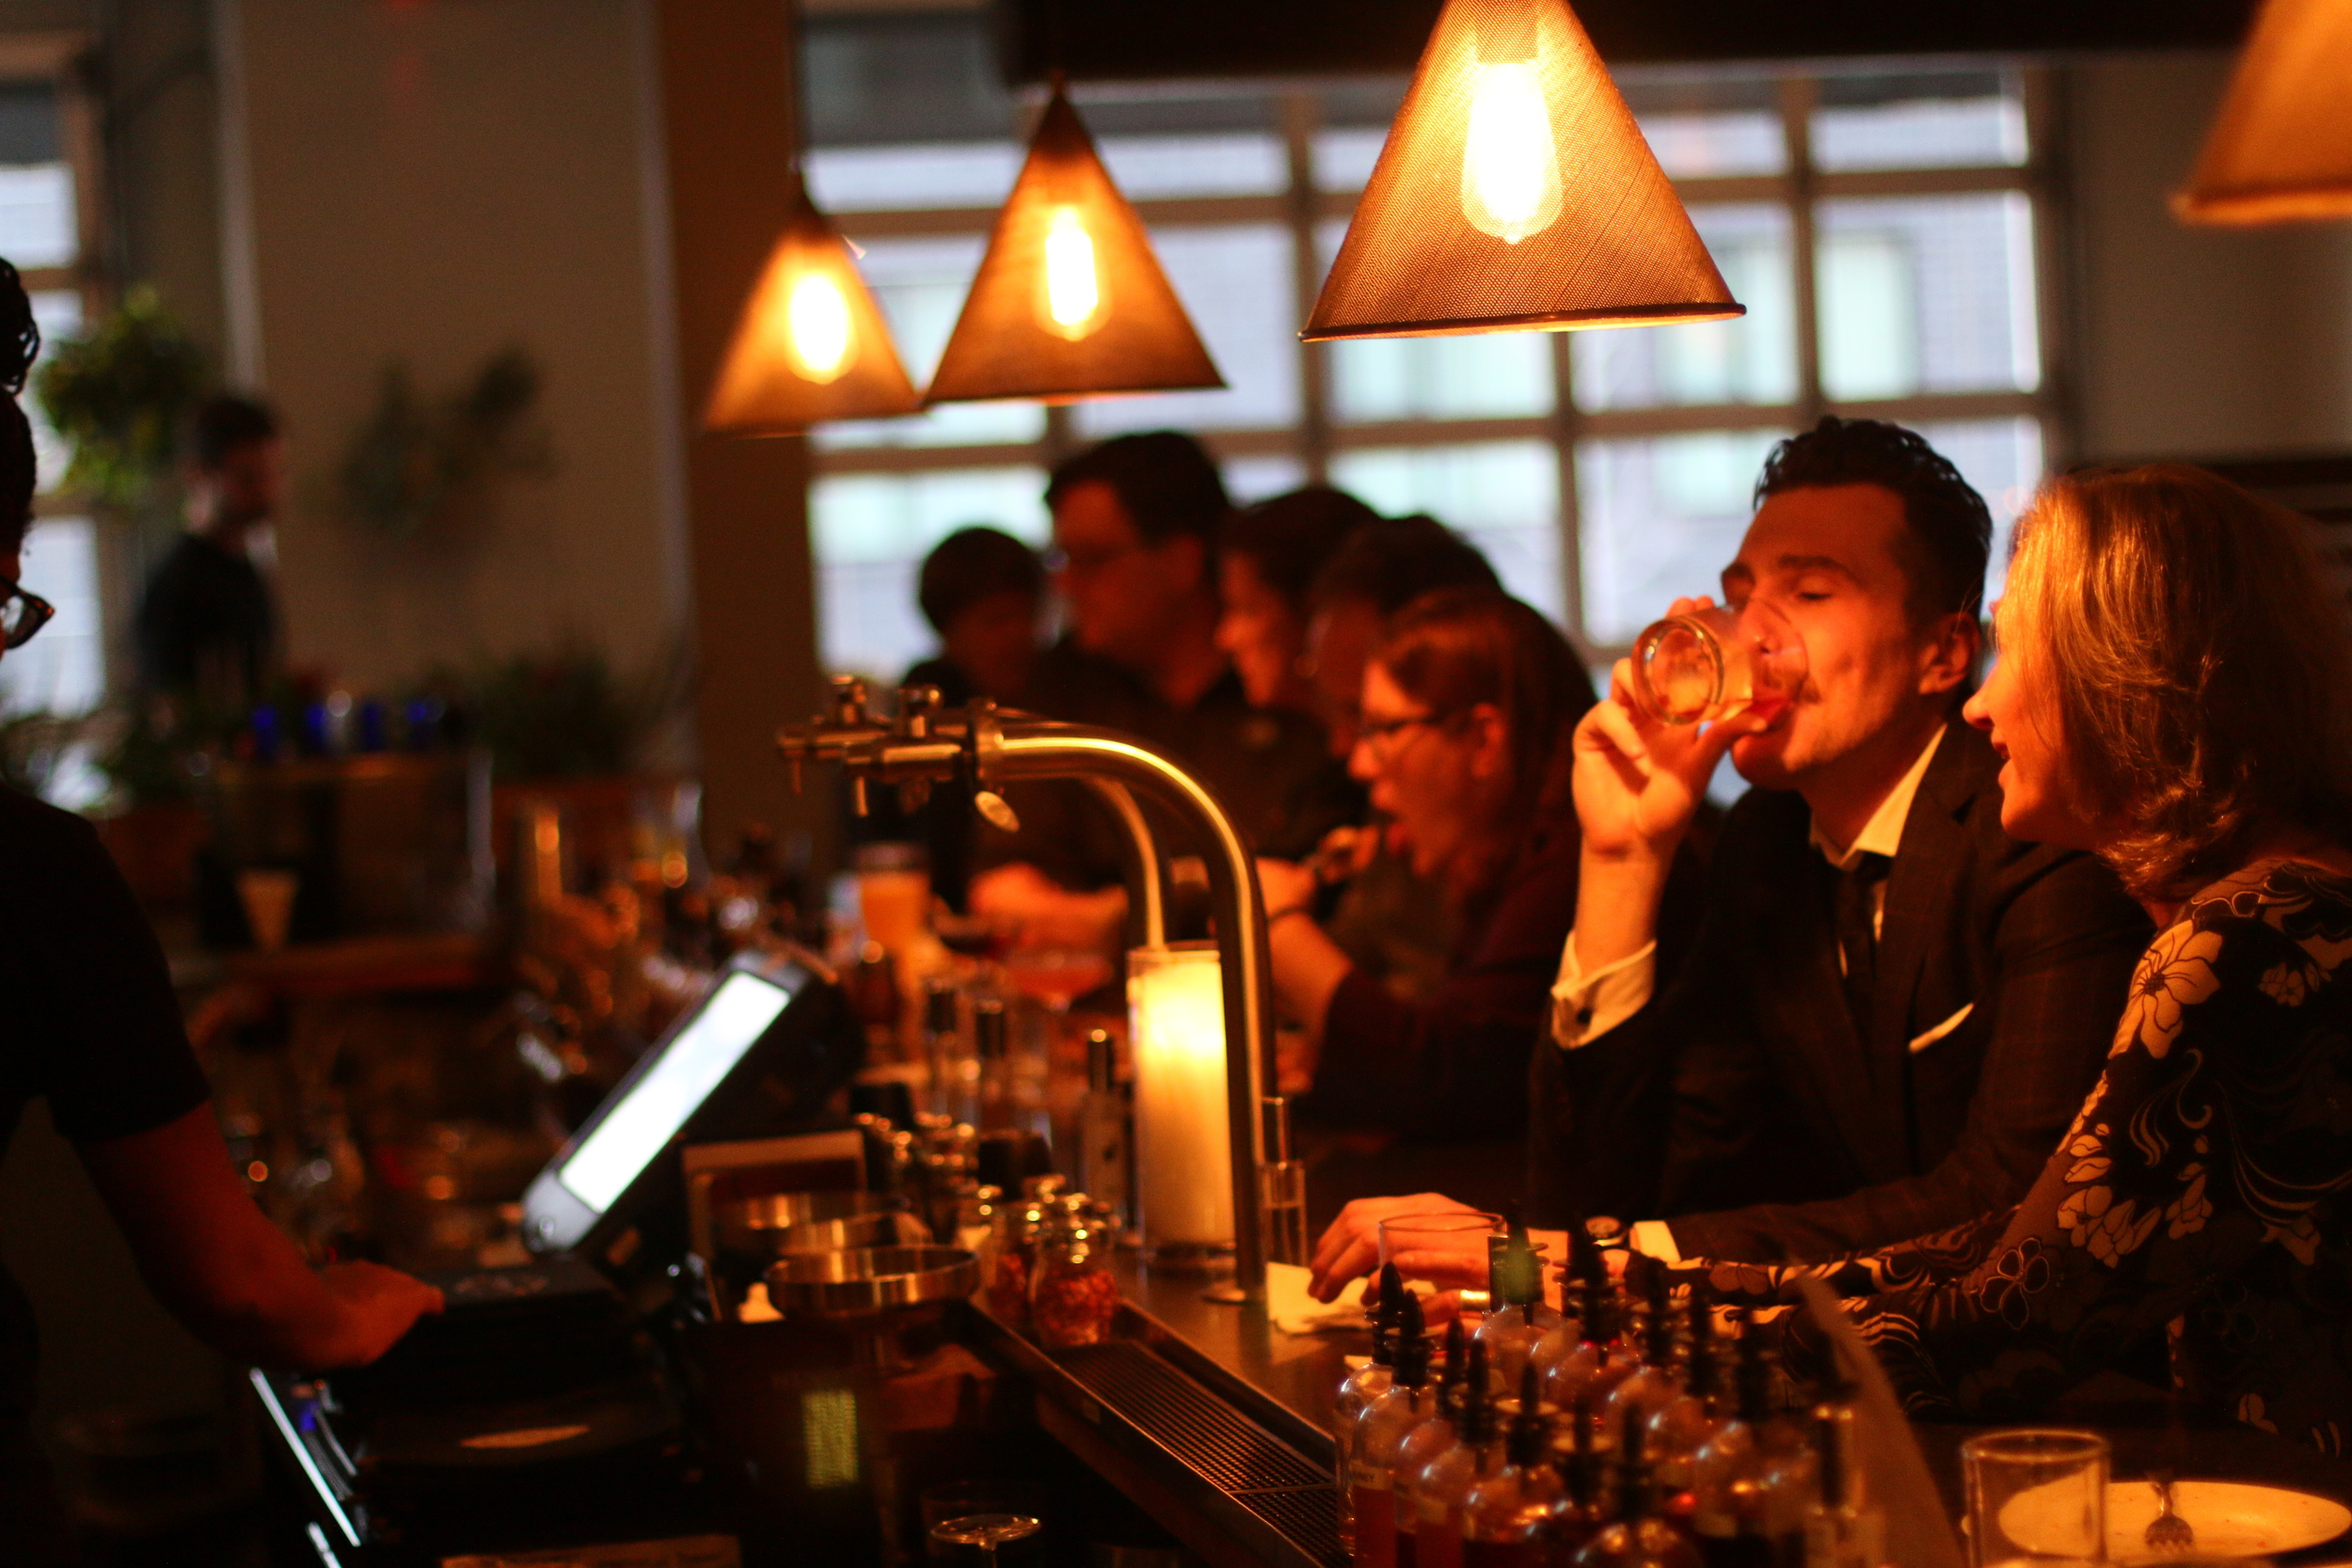 Many came to indulge in the Secret Life of Cocktails event, making for a fun, aromatic night at Pizzeria Verita